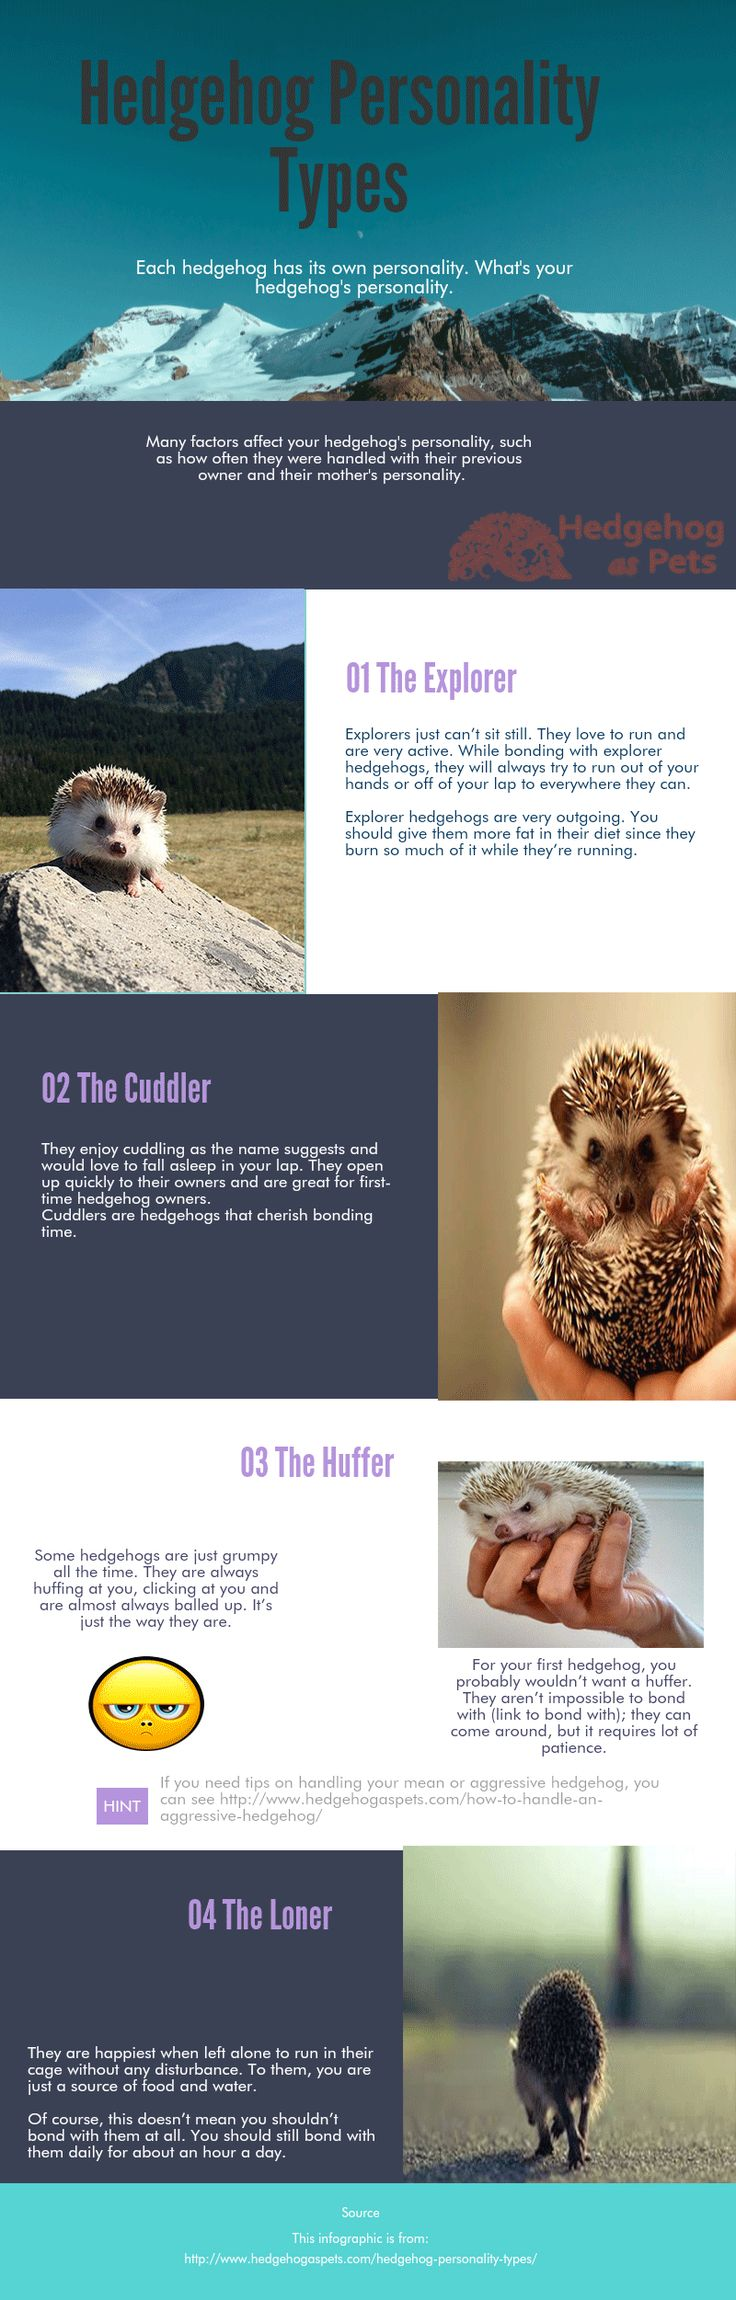 Hedgehog's personalities depend on many factors, the most important is how often they are handled and in which way. A hedgehog that was neglected, not handled very often or handled with gloves/in an intimidating manner are most likely to be mean and aggressive. Another factor that plays a role in your hedgehog's personality is their …